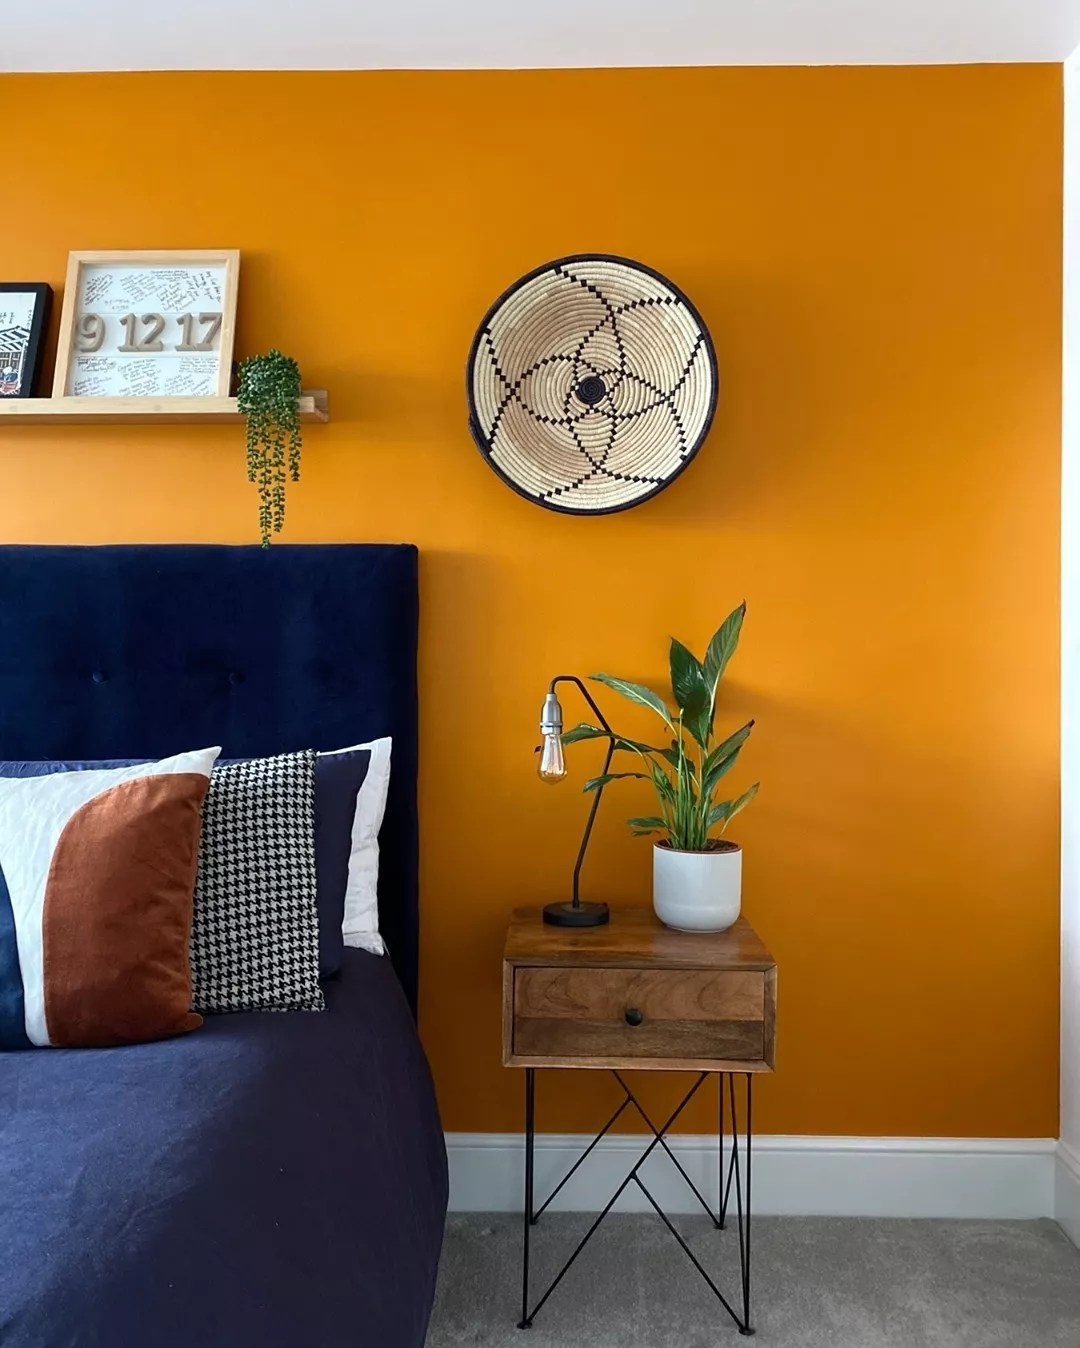 Deep navy bed against a bright orange wall. Photo by Instagram user @mushahome.